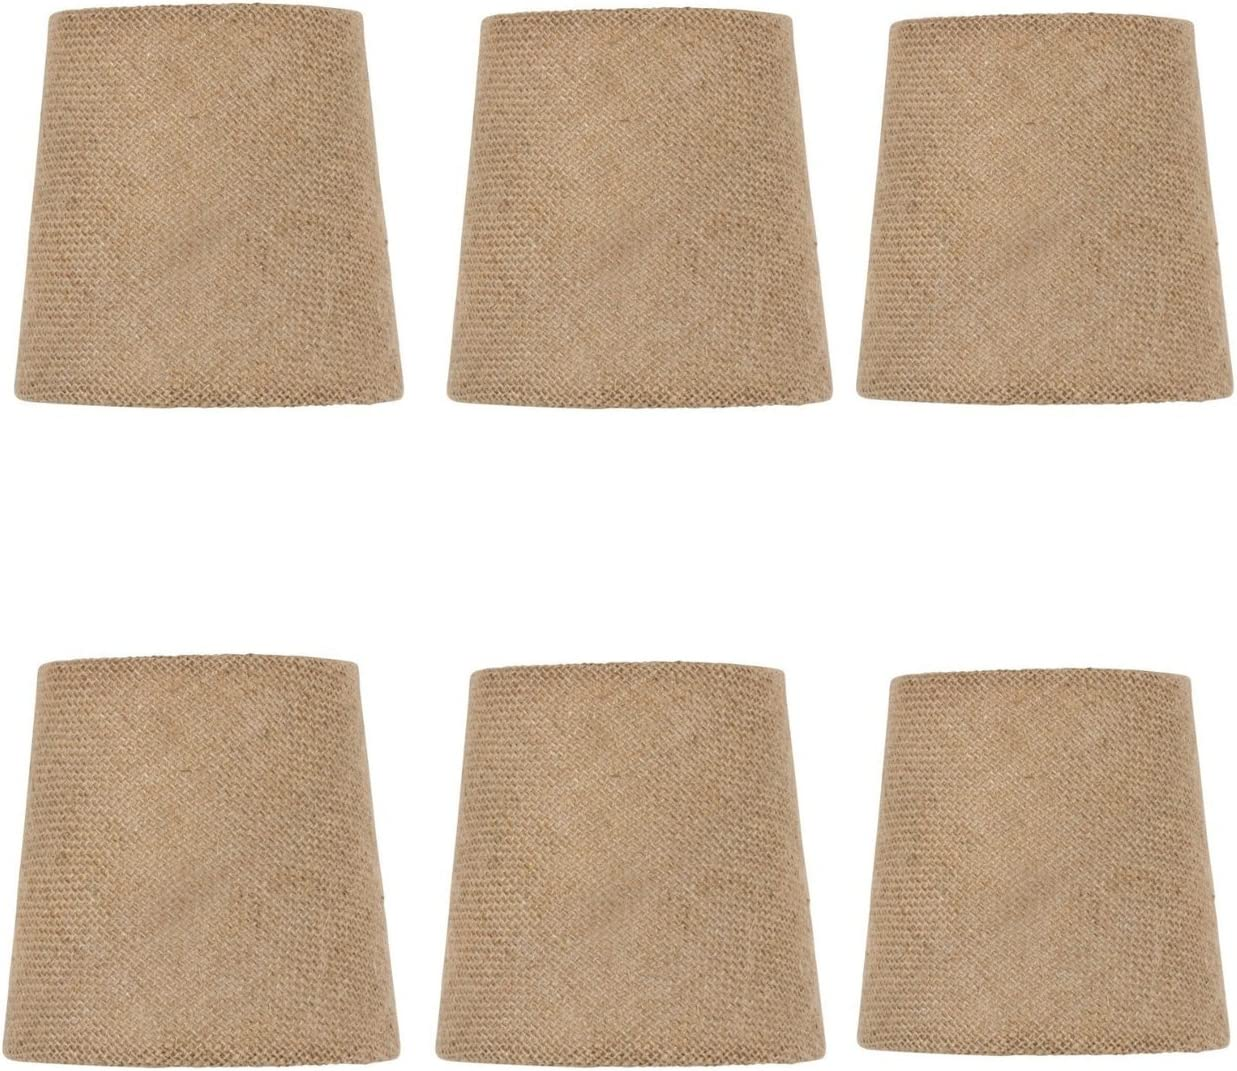 Upgradelights Set of Six – 4 Inch European Drum Style Chandelier Lamp Shades in Natural Burlap Fabric 3x4x4